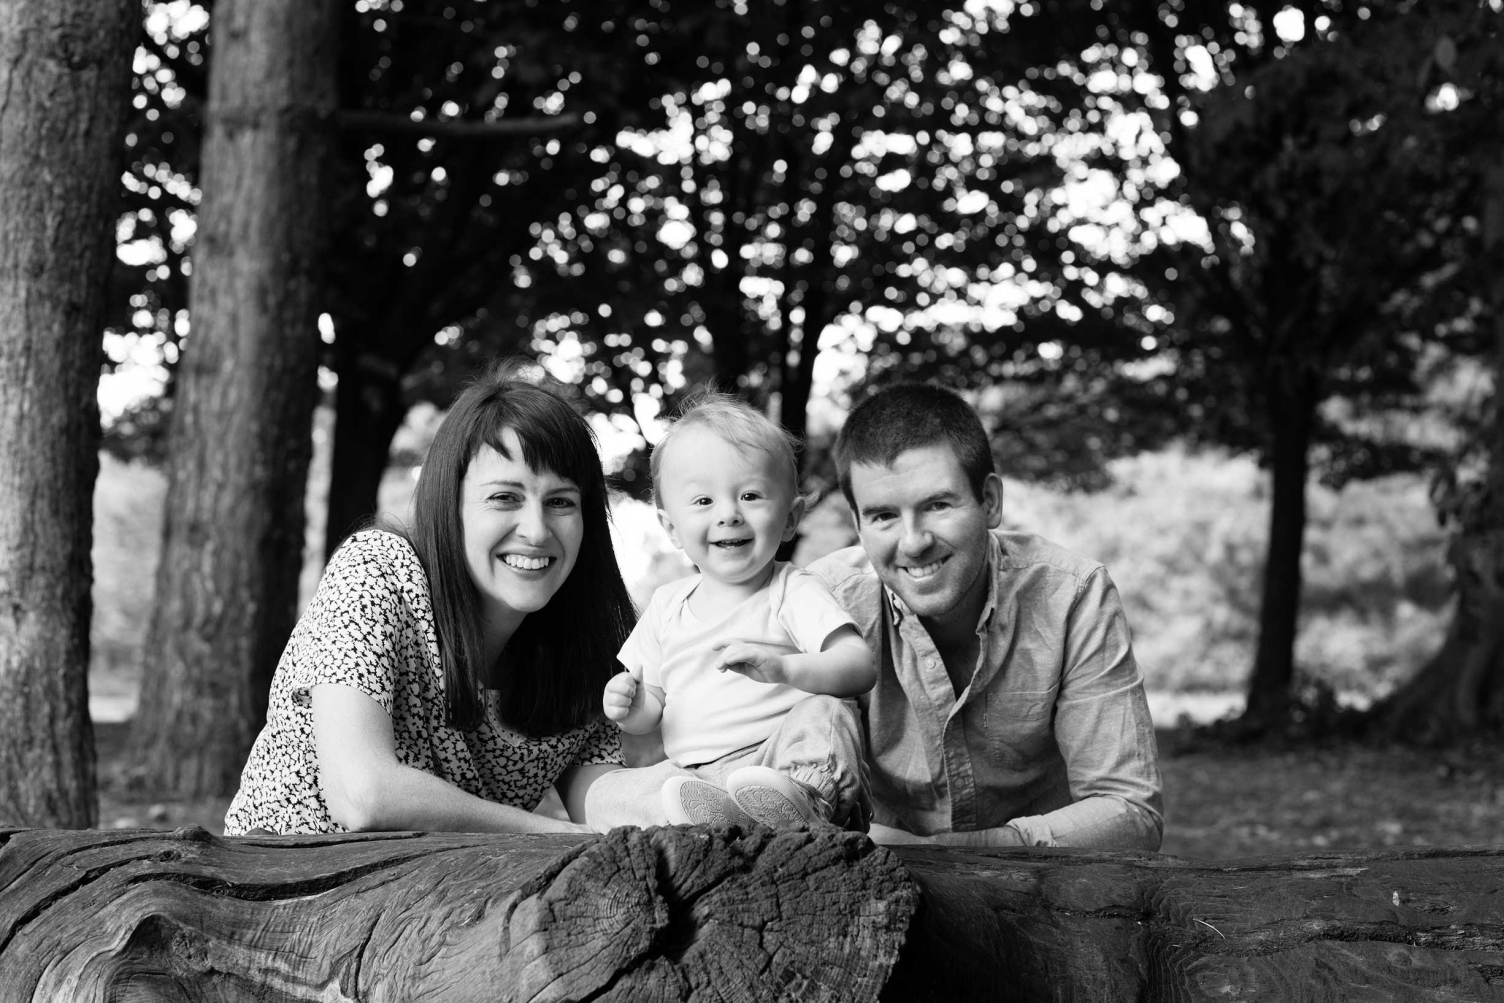 Helen Bartlett is a baby photographer in Richmond, who captures your family life in beautiful black and white photos.